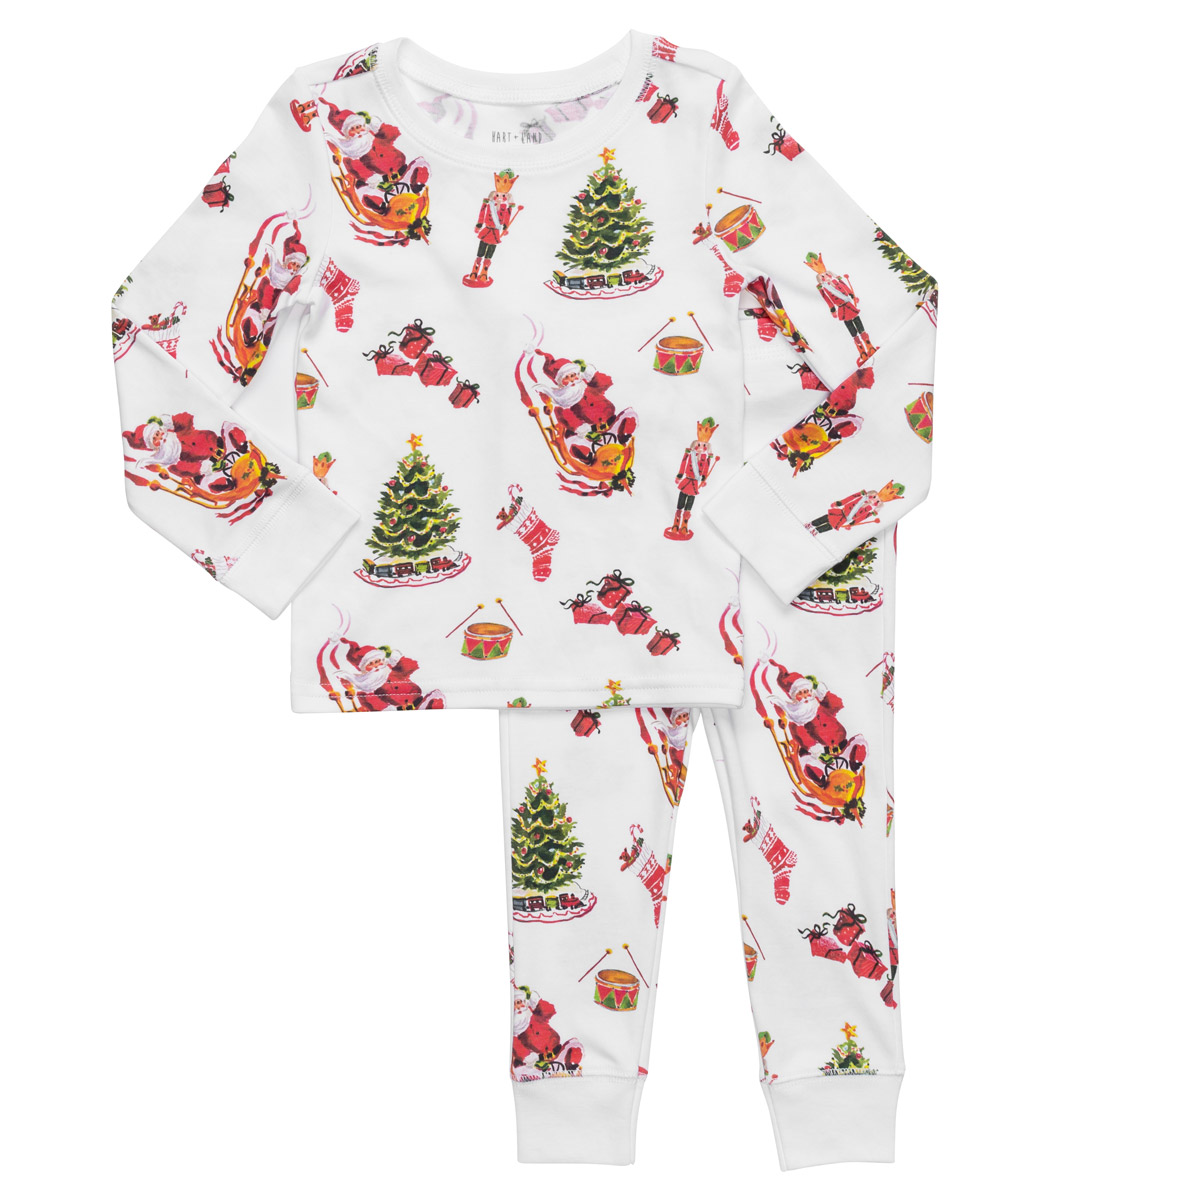 Hart + Land Classic Holiday Pajama Set for Toddlers